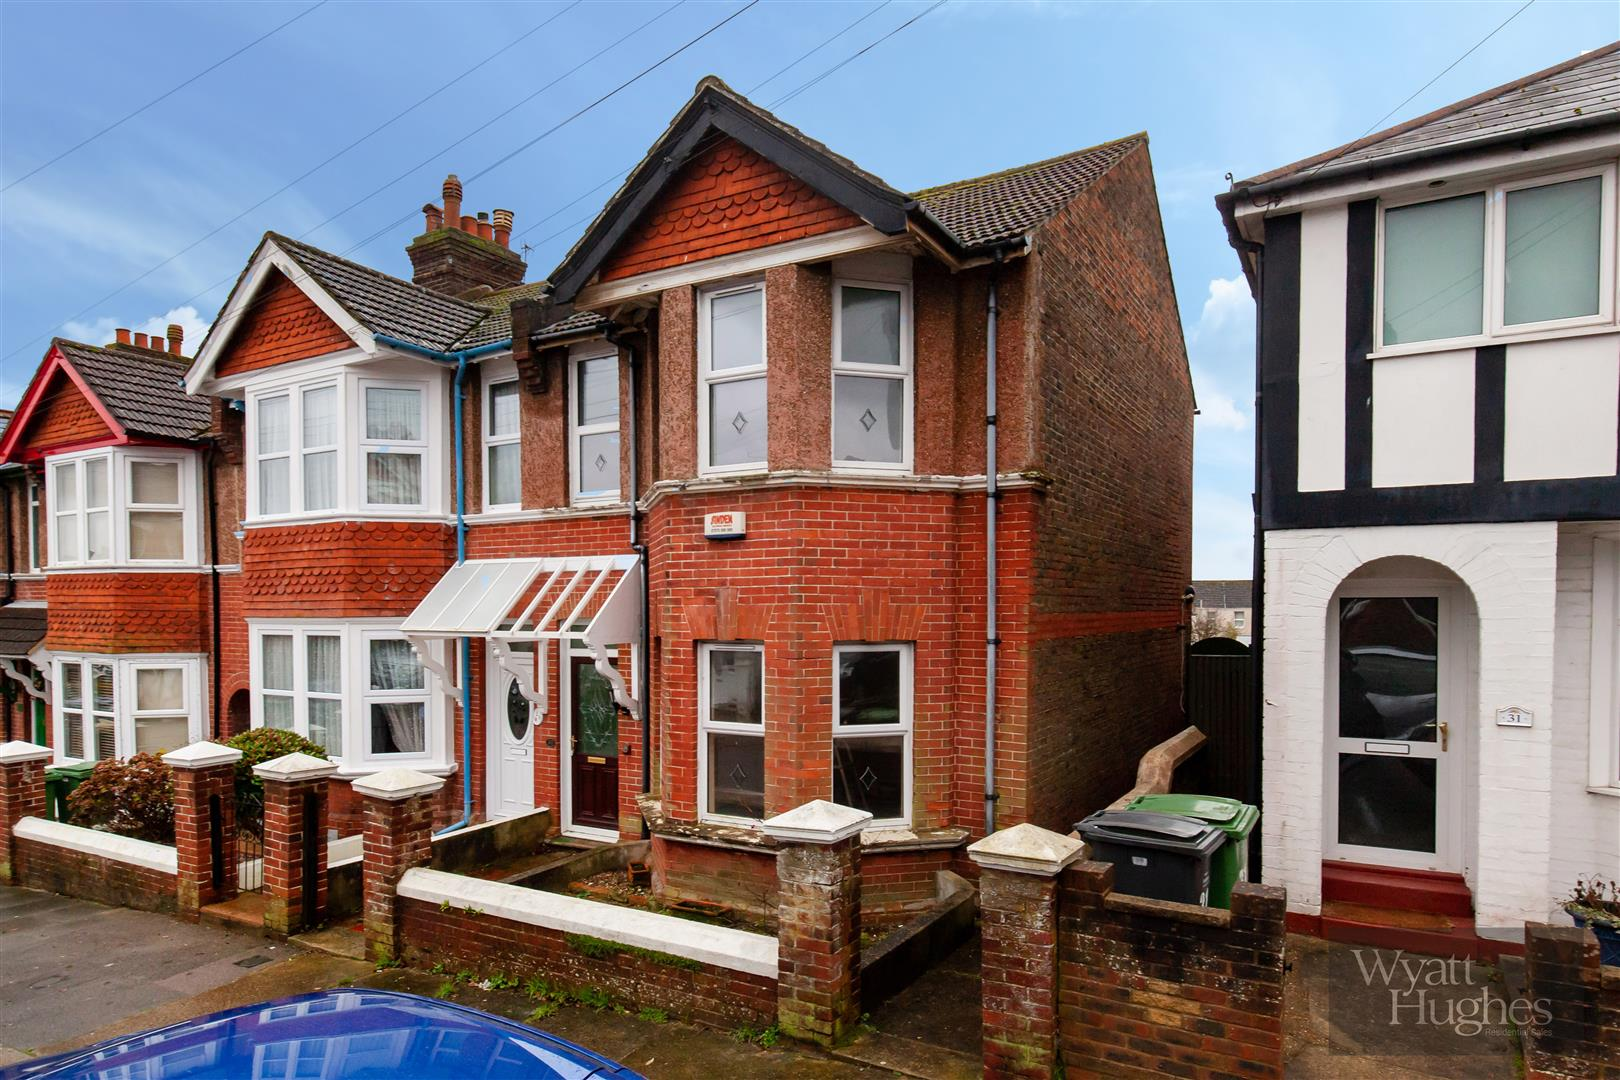 3 bed end-of-terrace-house for sale in Burry Road, St. Leonards-On-Sea  - Property Image 24